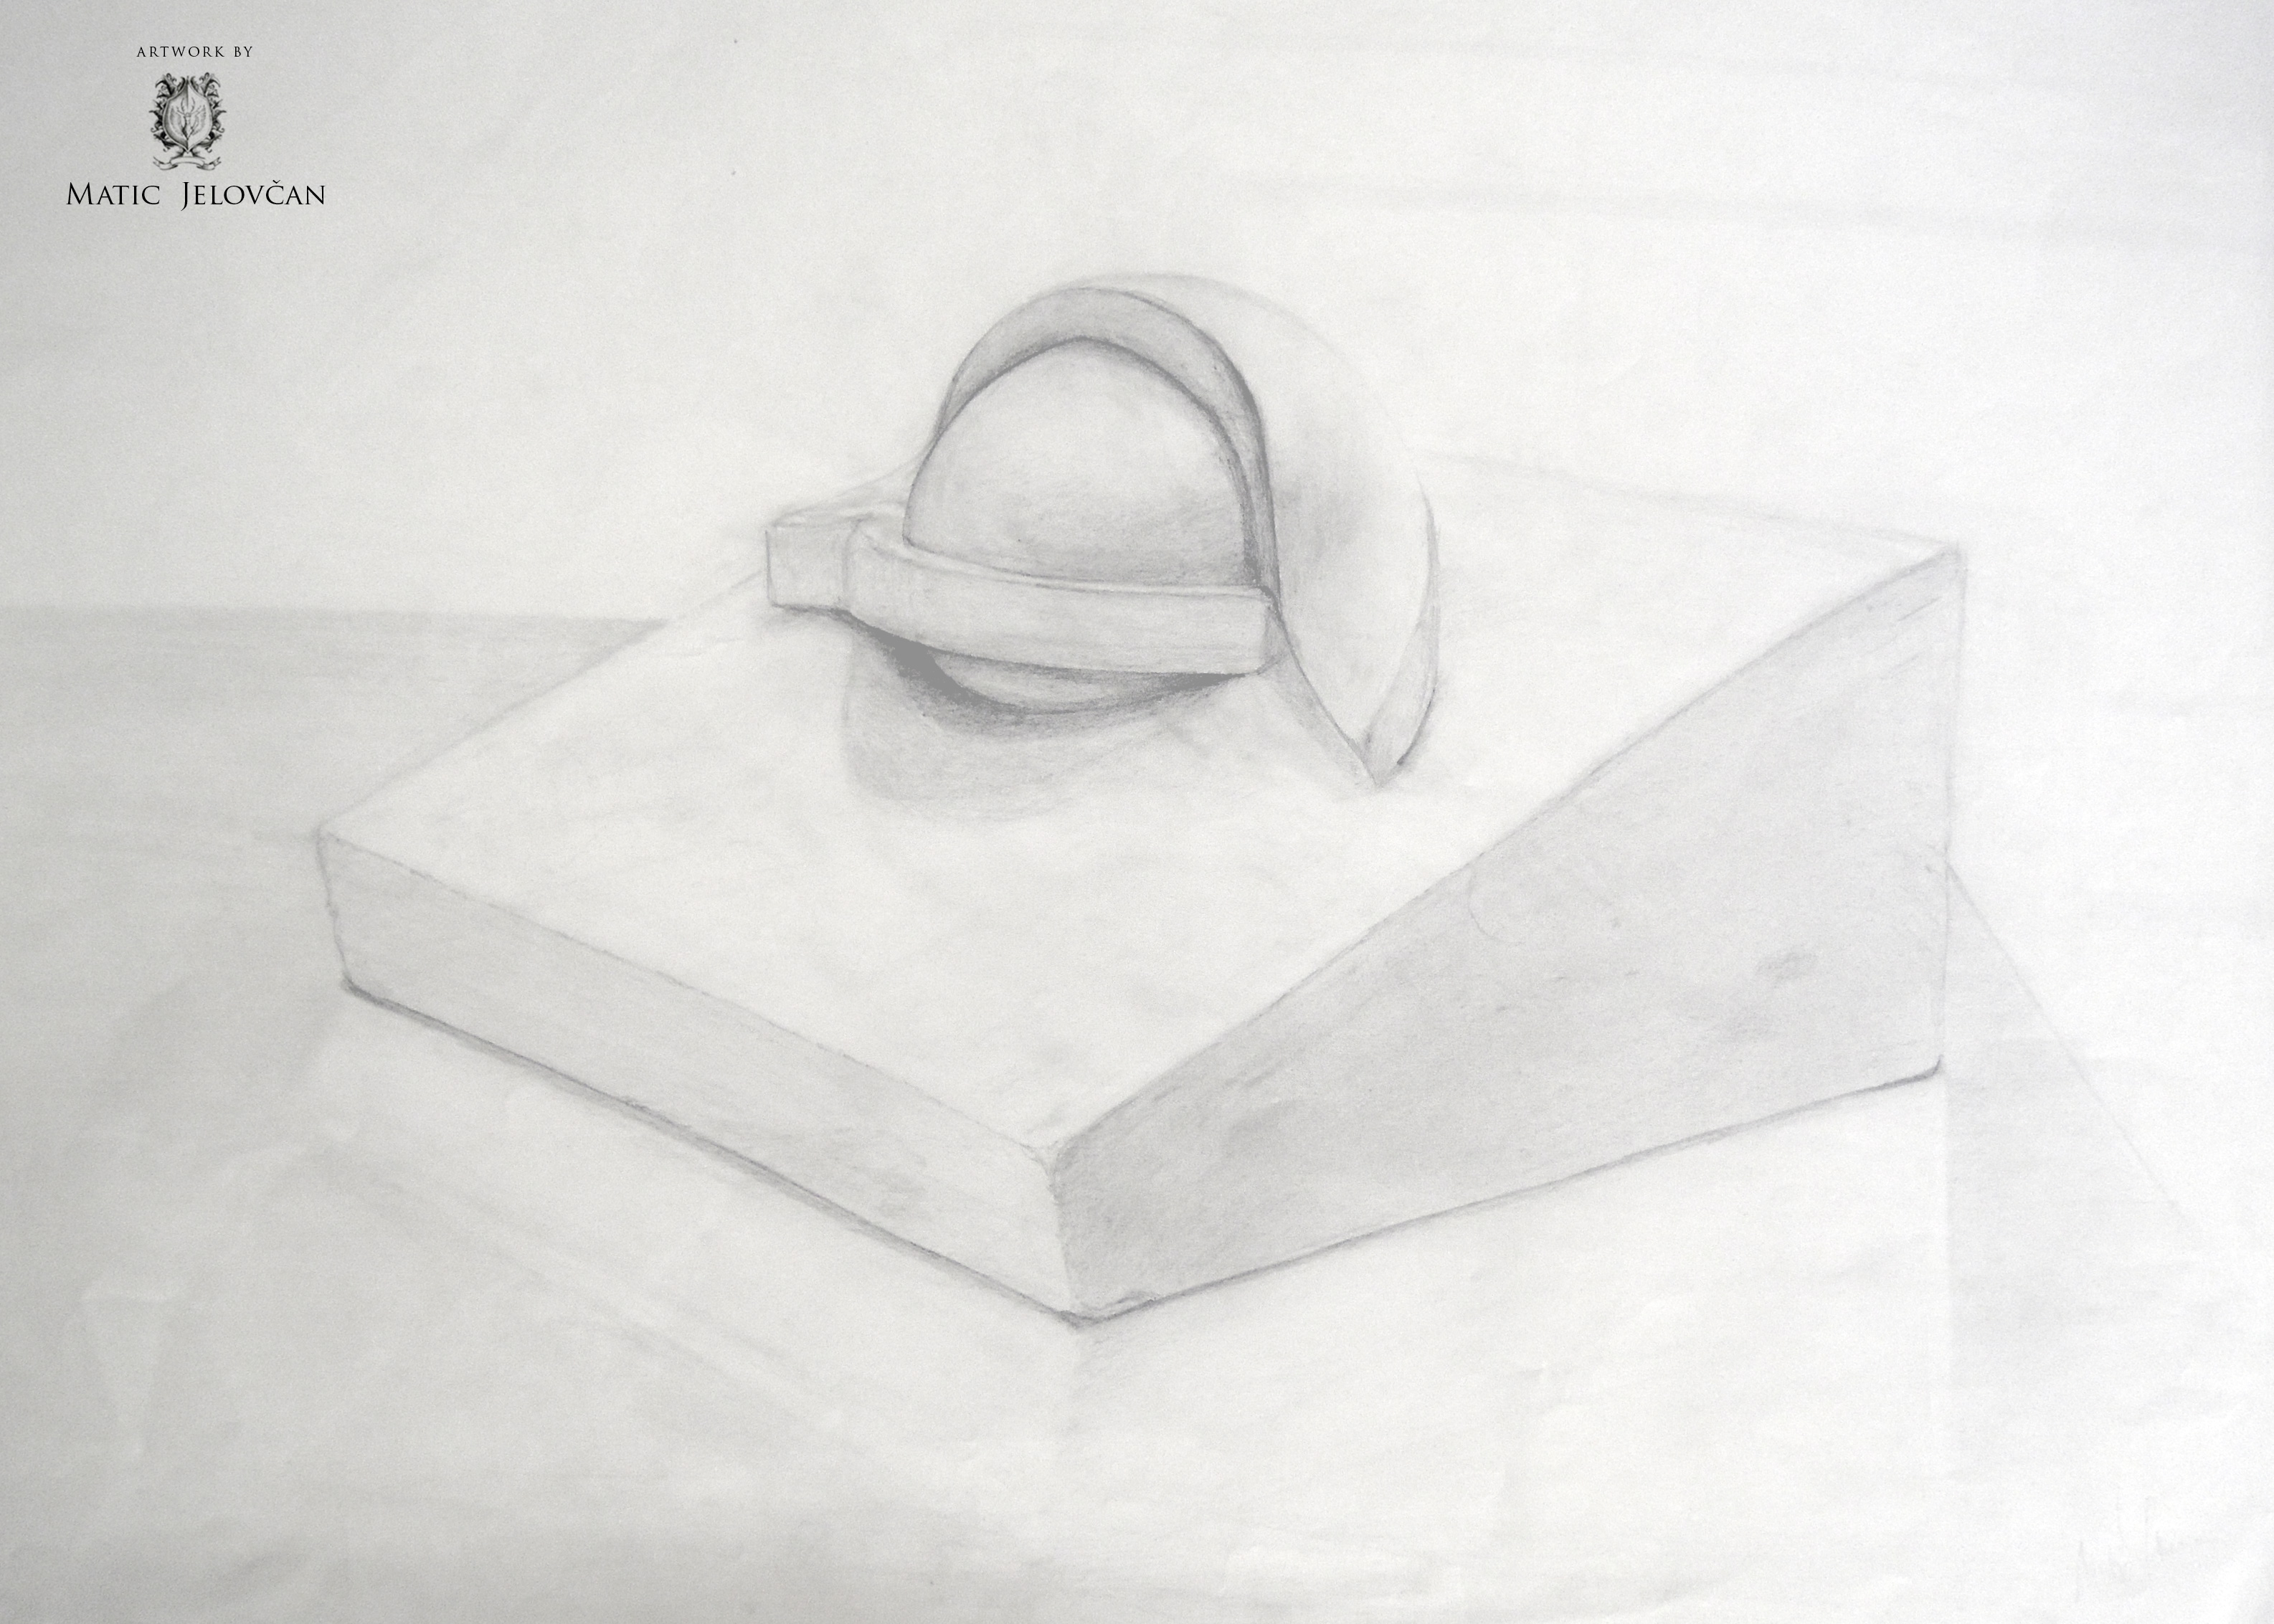 Works from school 7